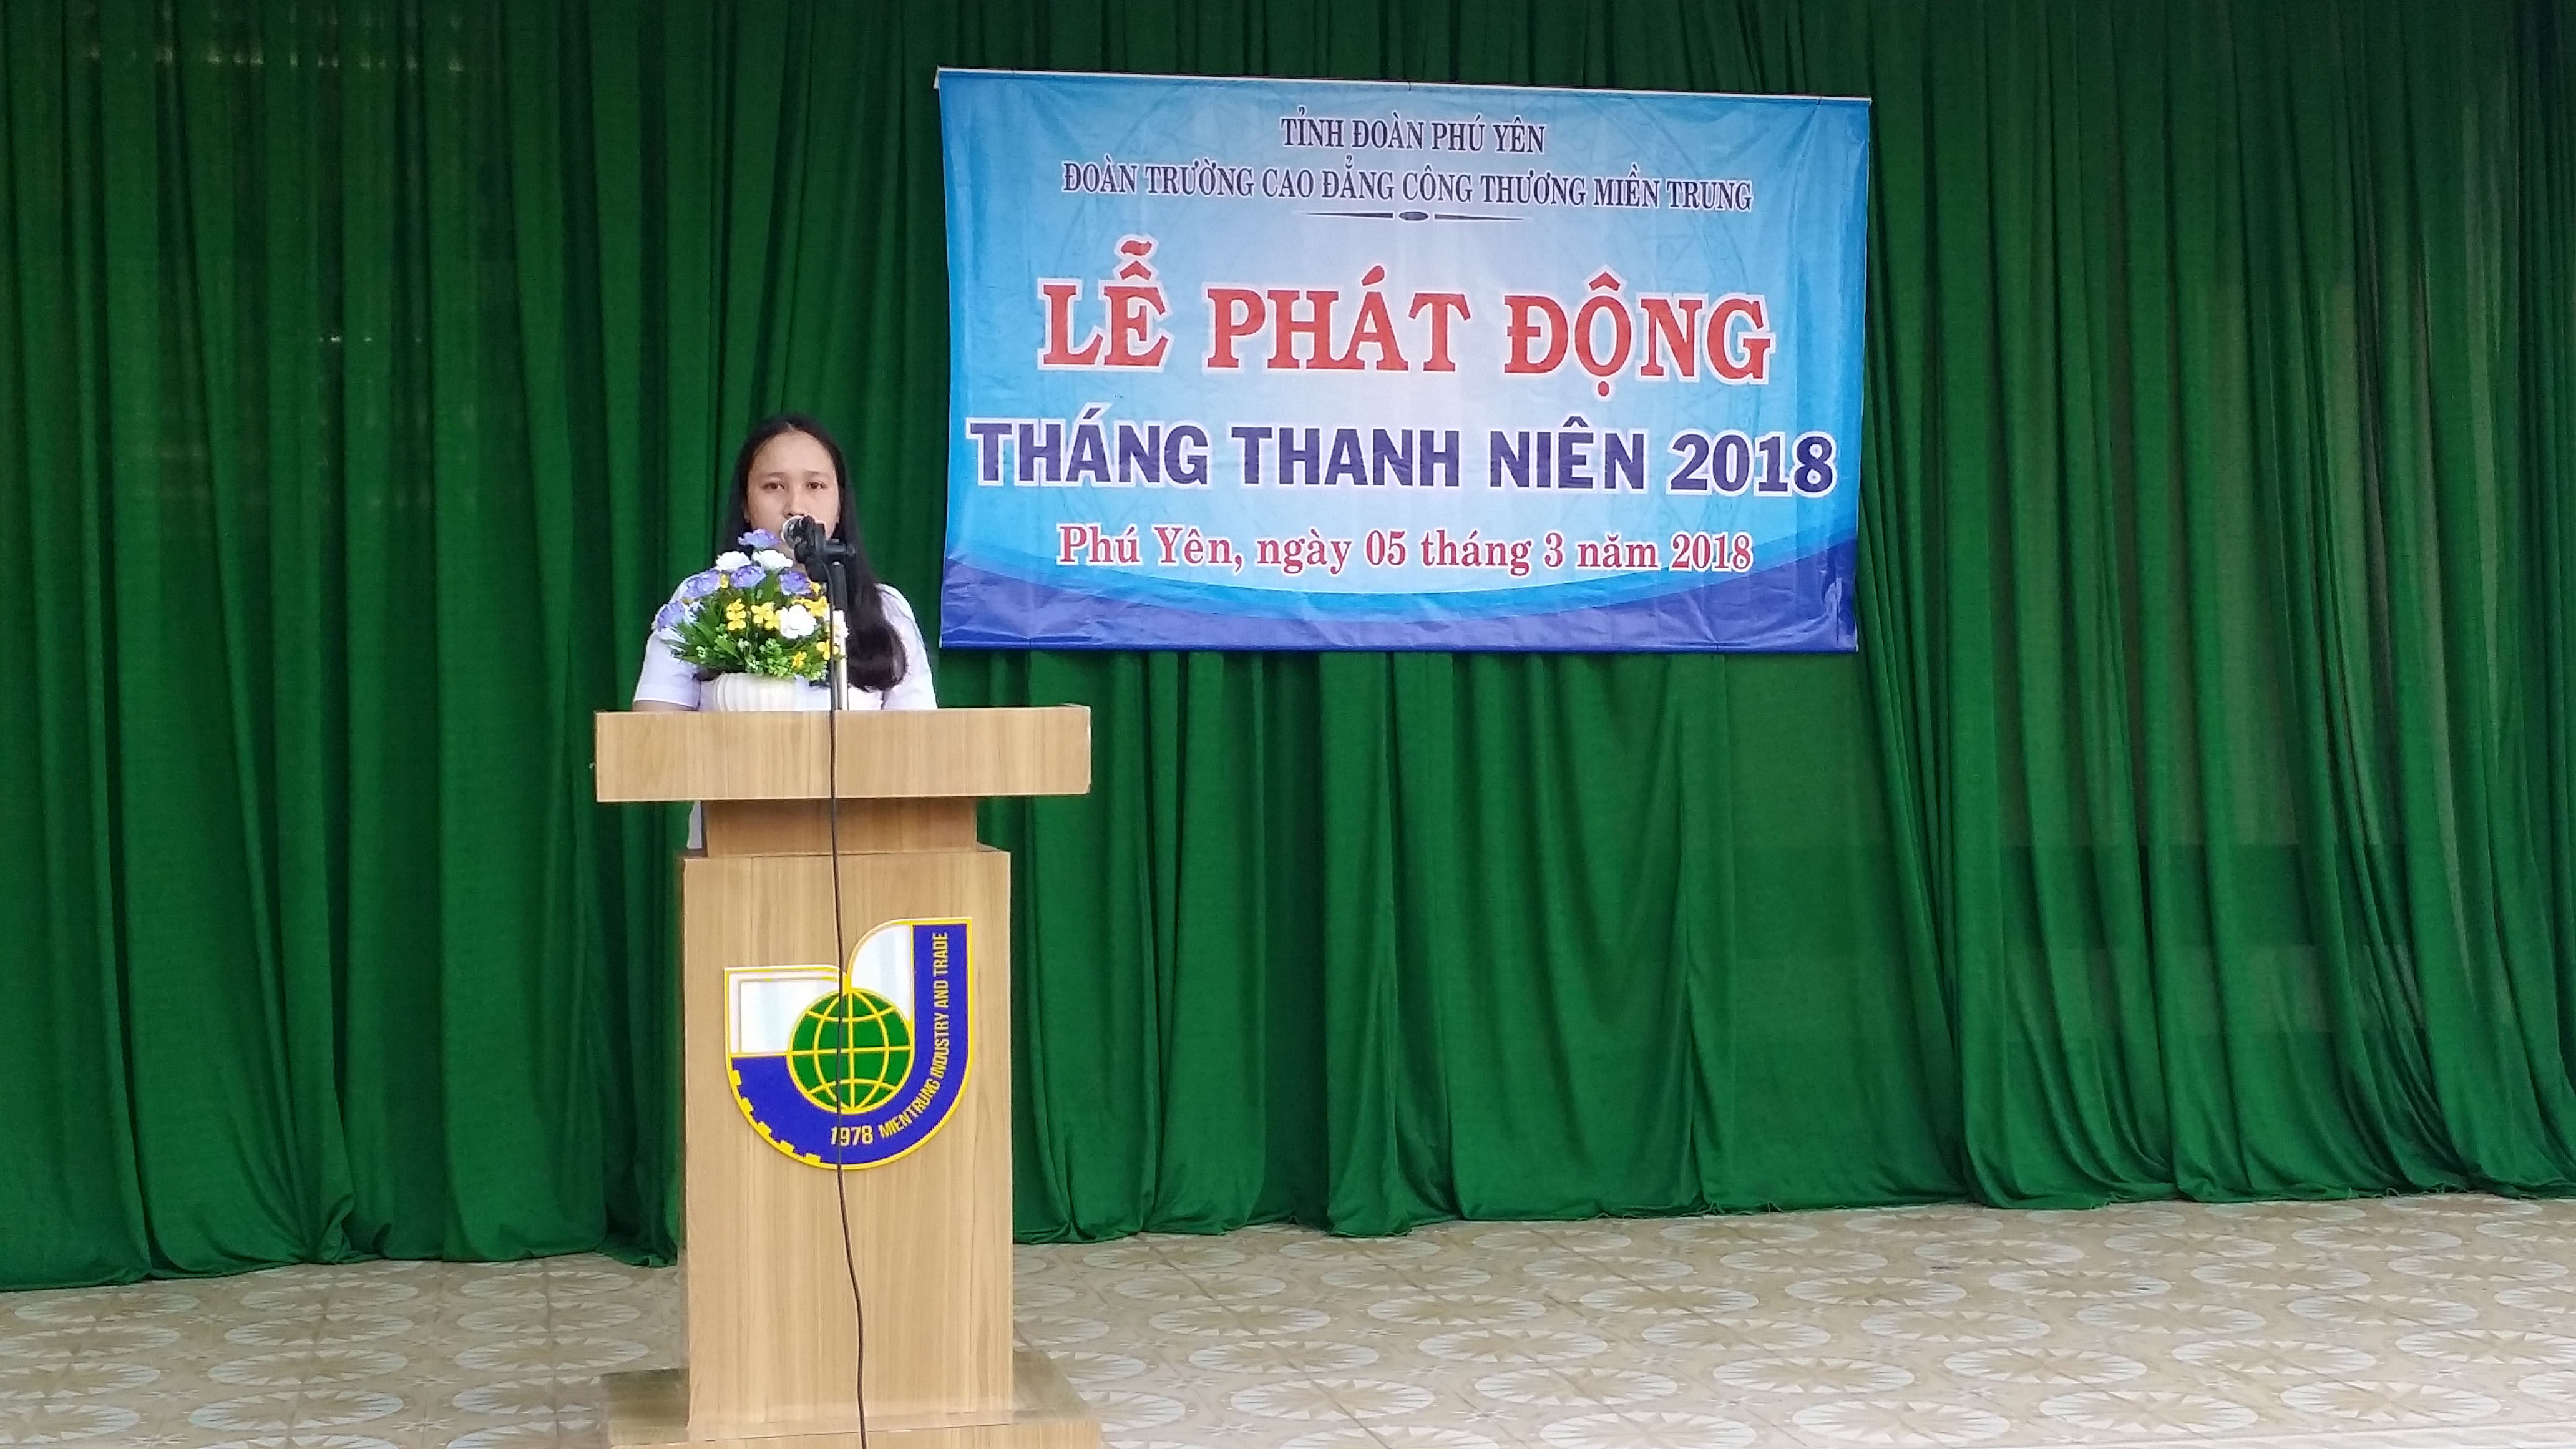 le-phat-dong-thang-thanh-nien-2018